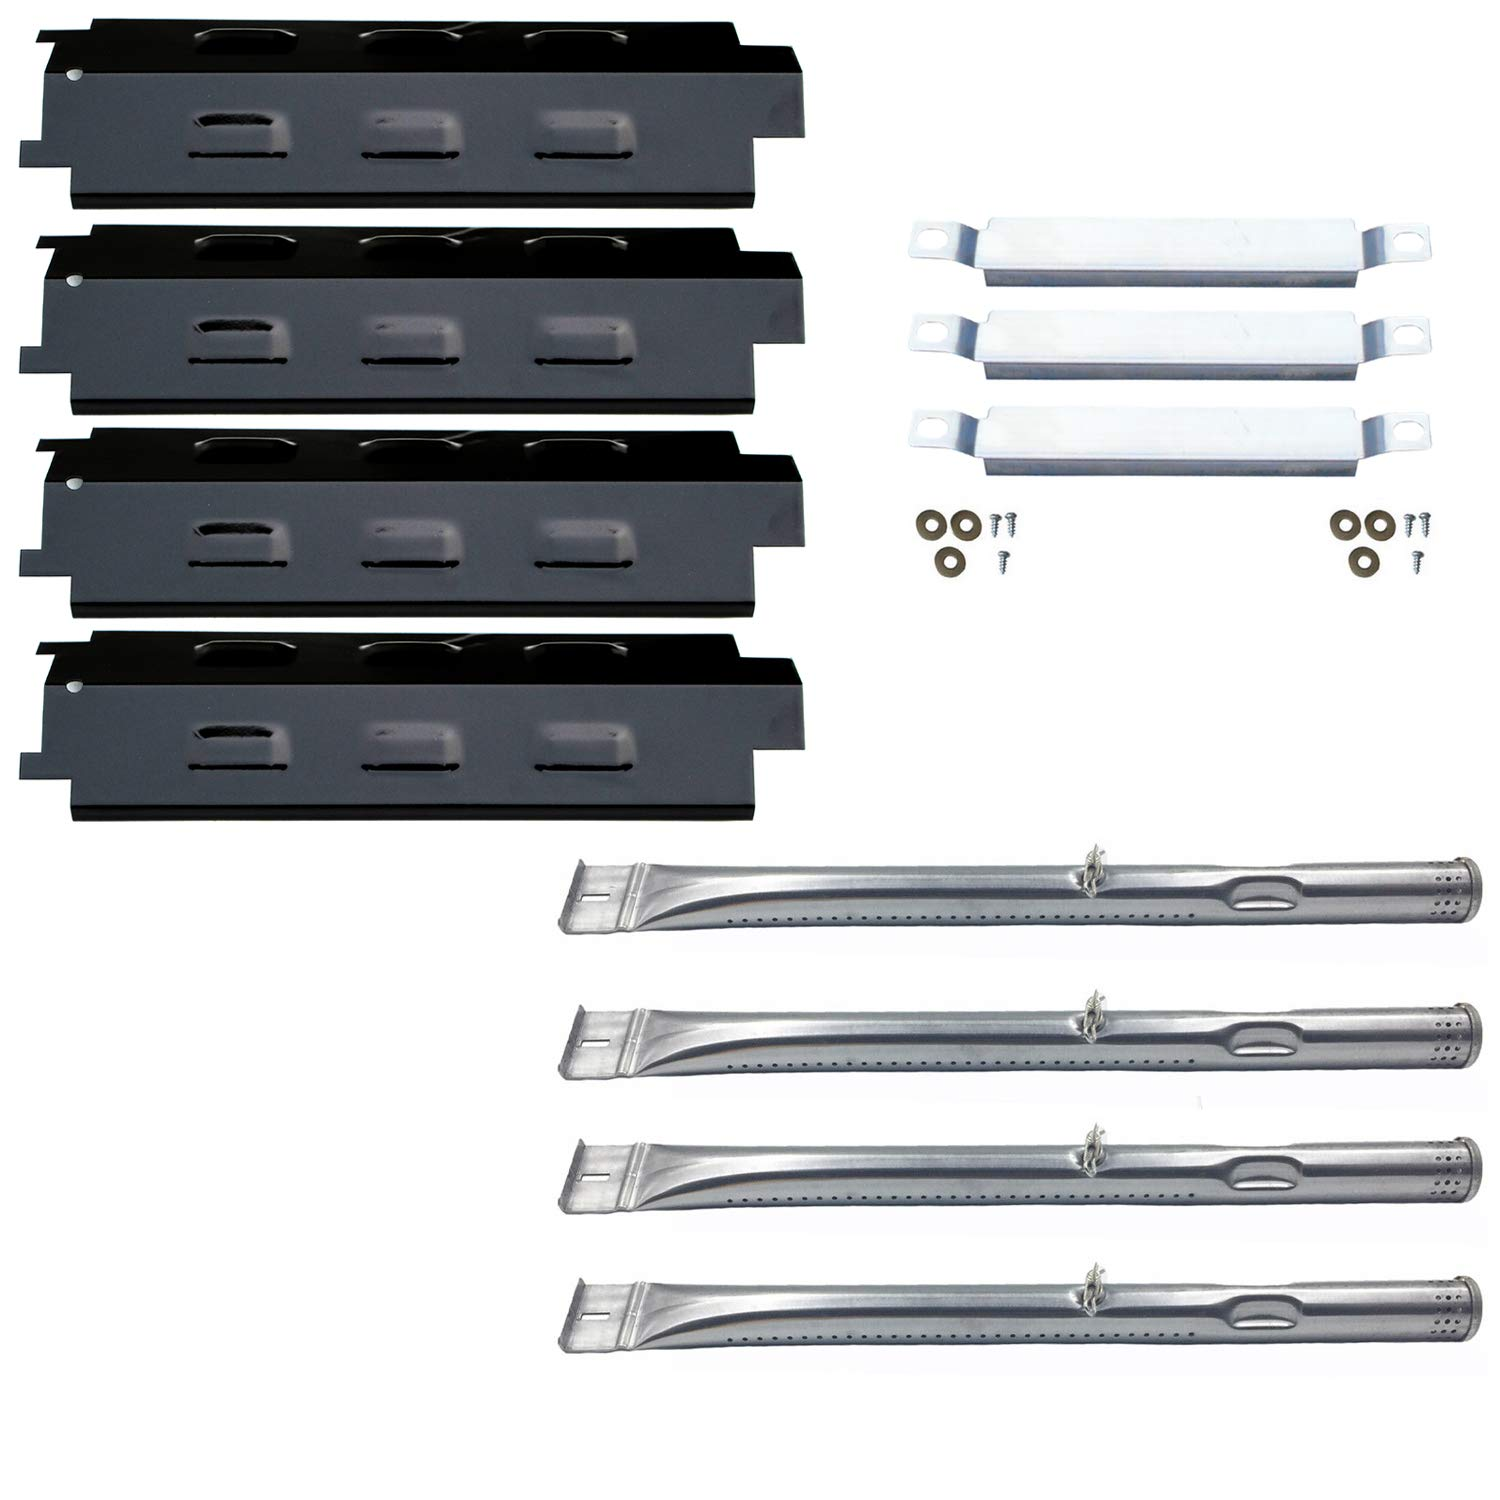 Direct Store Parts Kit DG259 Replacement Charbroil Grill 463436213,463436215; Thermos 466360113 Repair Kit (SS Burner + SS Carry-Over Tubes + Porcelain Steel Heat Plate) by Direct Store